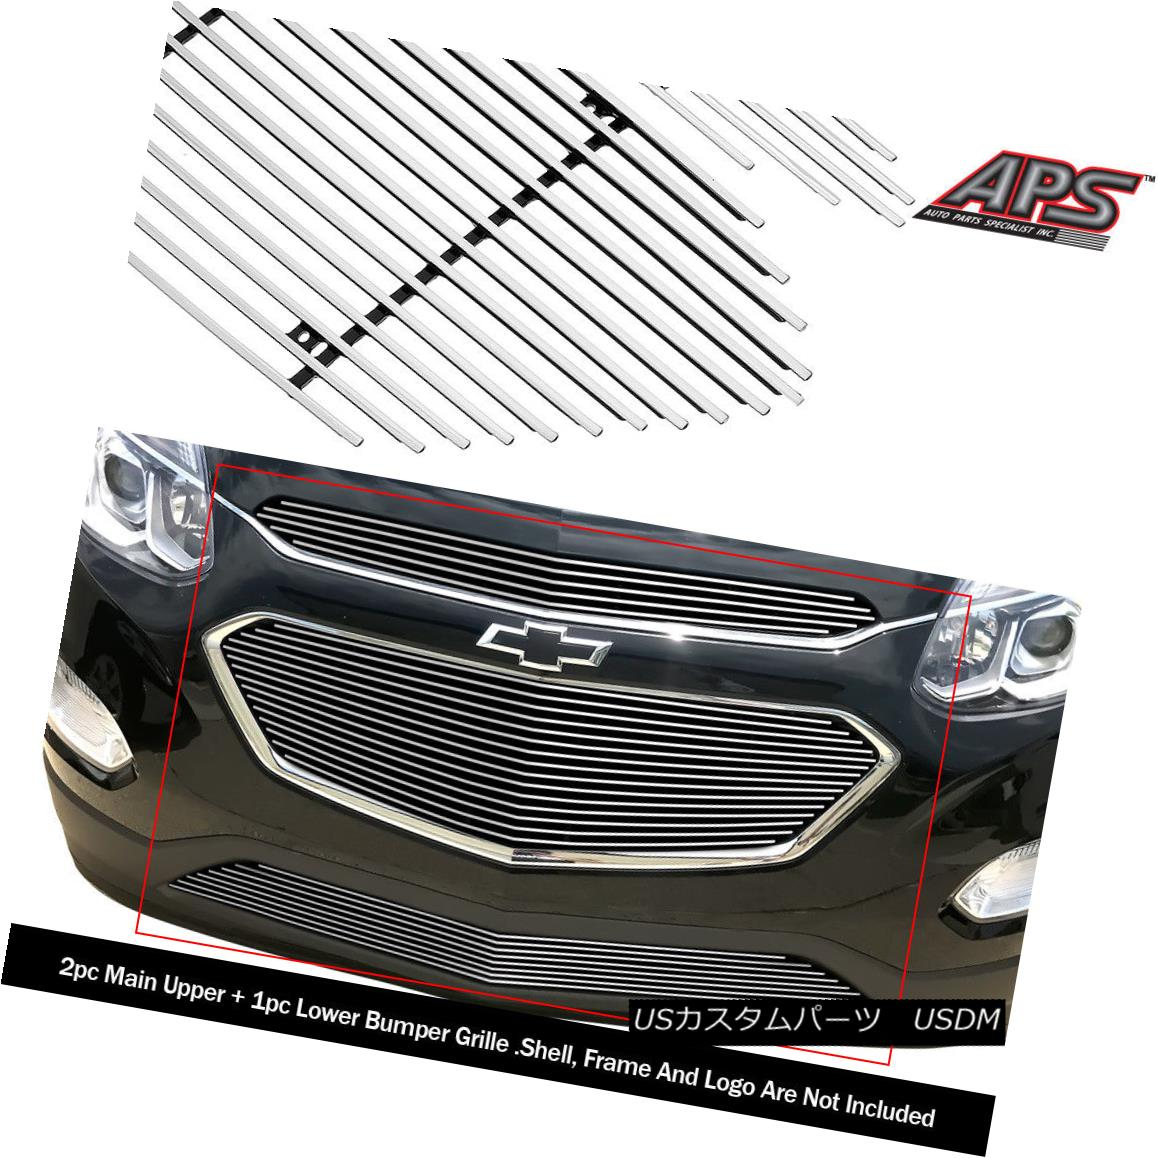 グリル For 2016-2017 Chevy Equinox Upper and Lower Billet Grille Combo 2016-2017 Chevy Equinoxの上および下のビレットグリルコンボ用